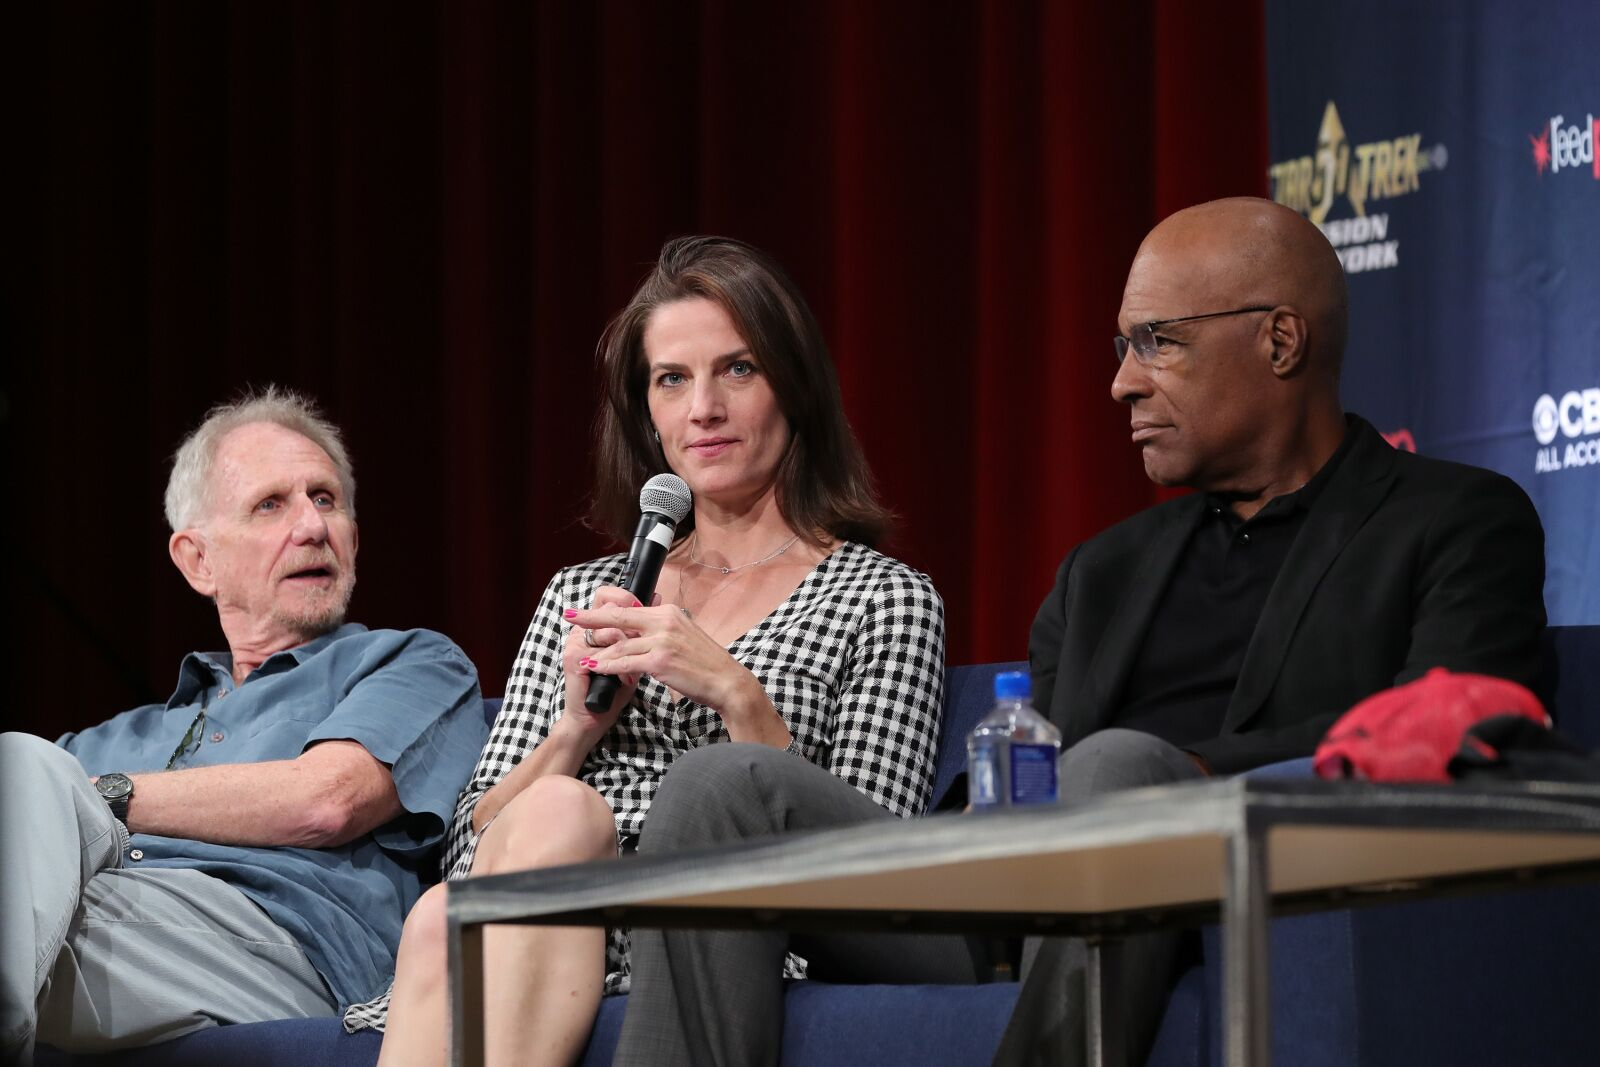 Terry Farrell confirms that Jadzia Dax was pansexual